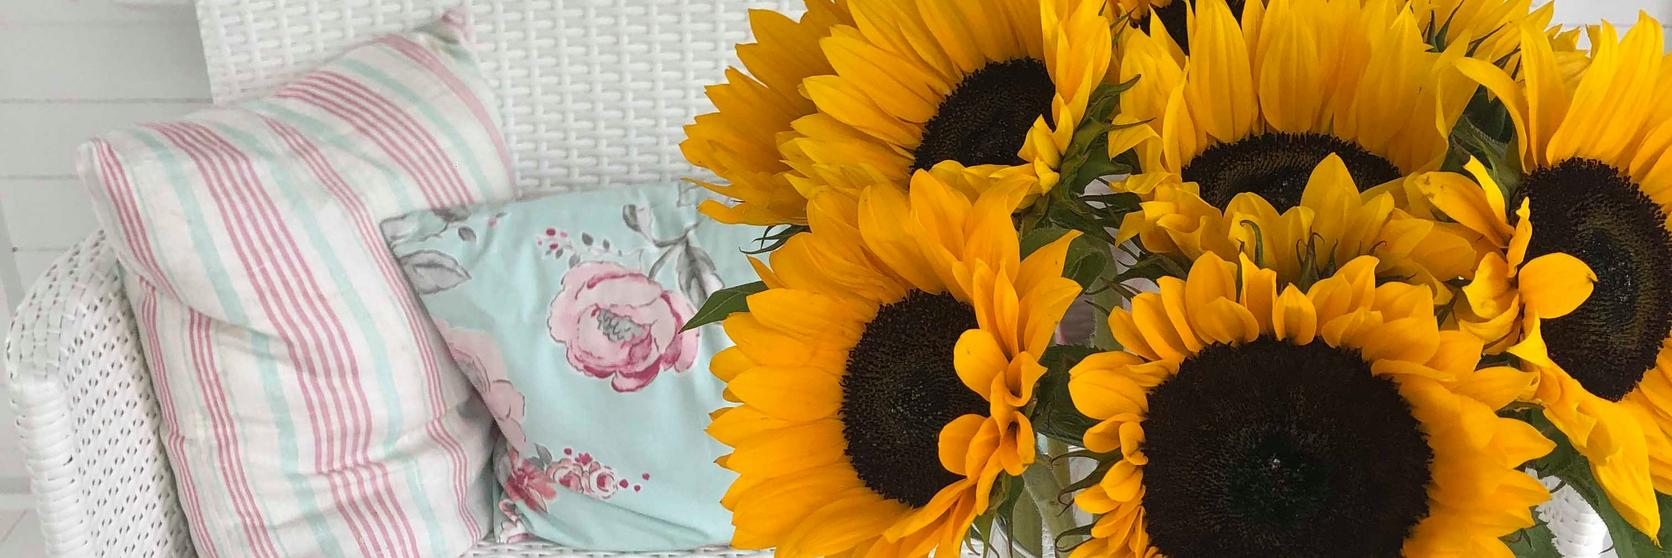 care-tips-sunflowers-ultimate-guide